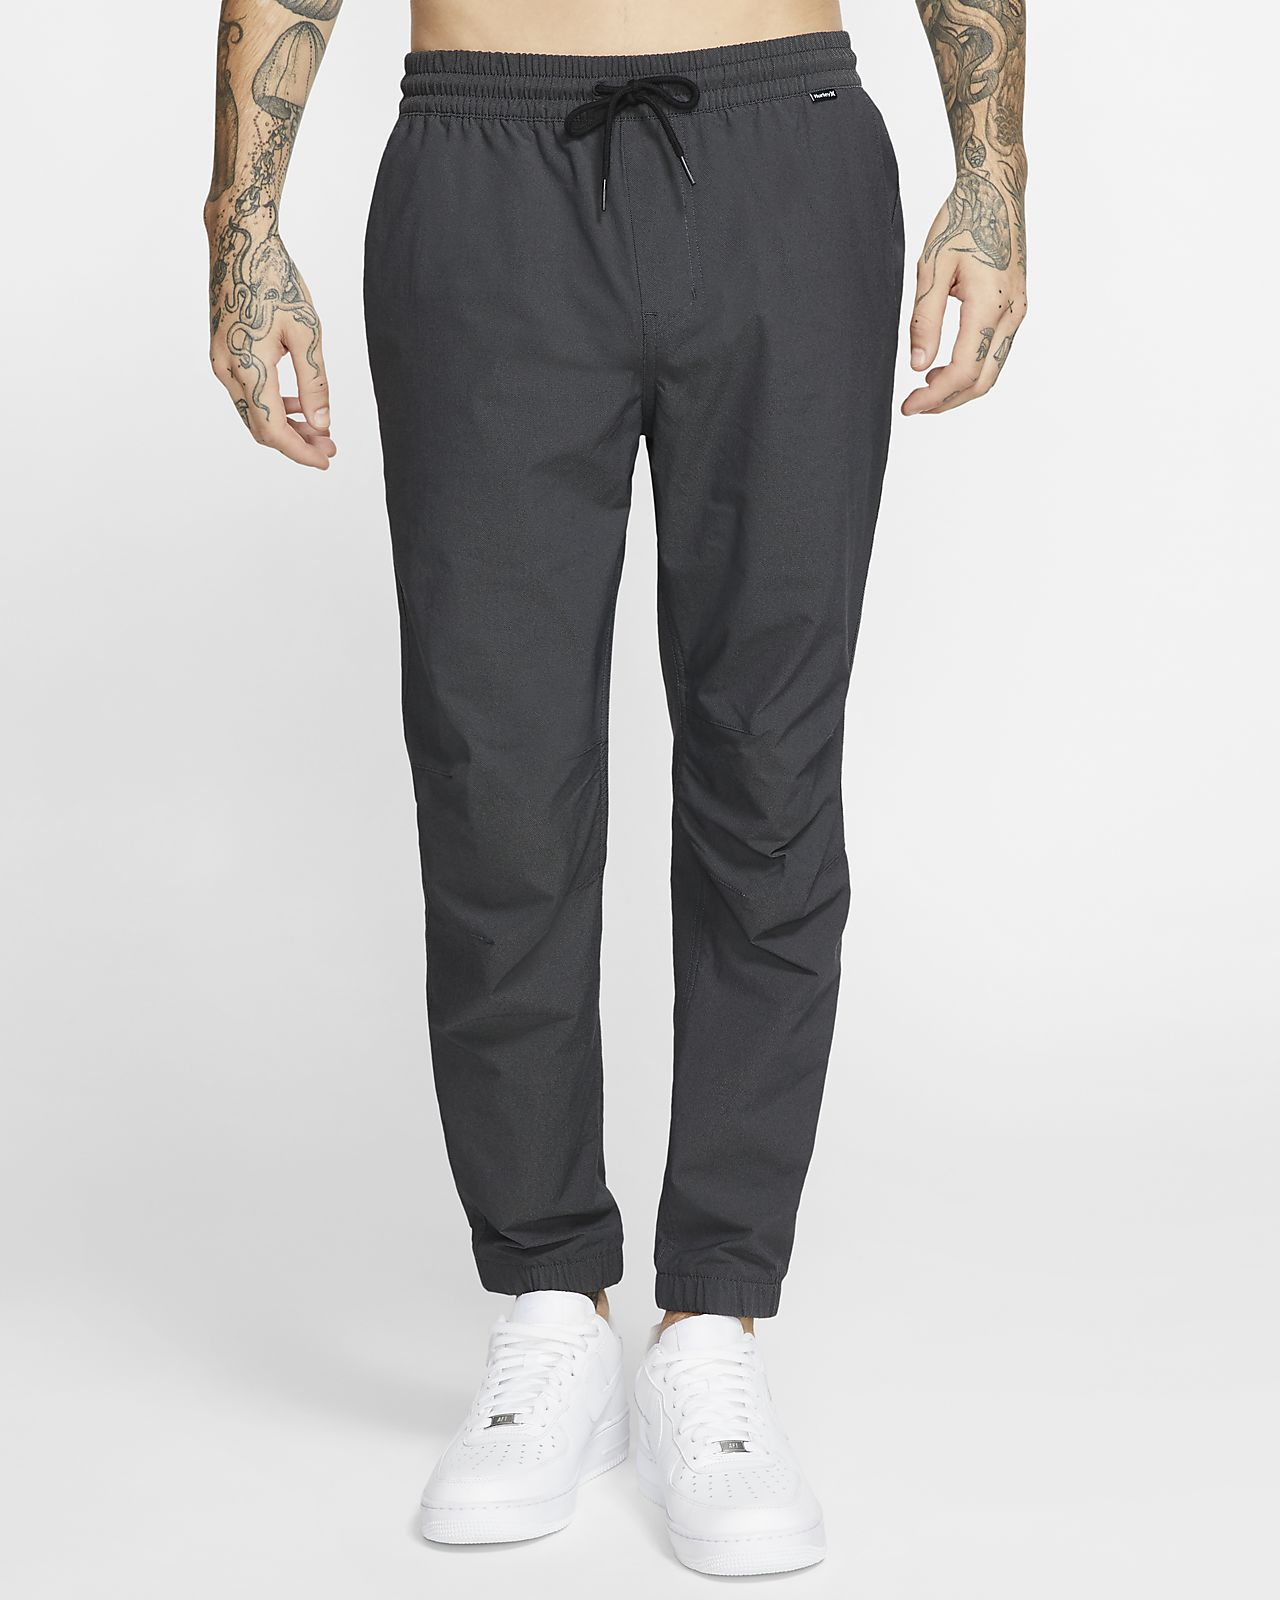 Hurley Dri-FIT Men's Joggers